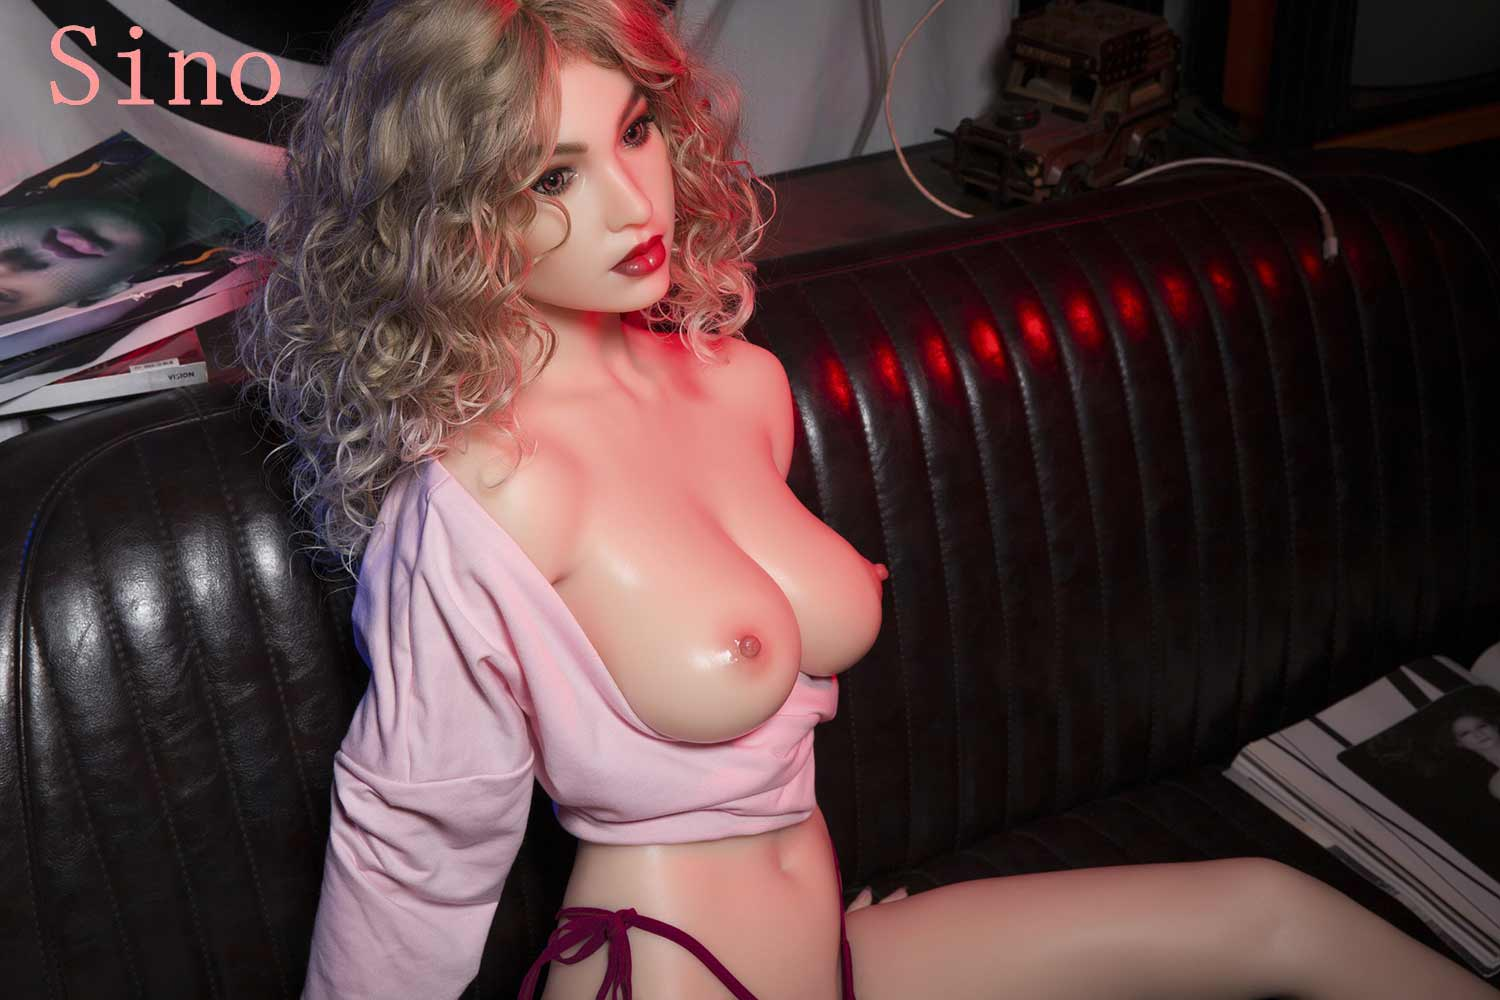 The silicone sex doll that pulls down the clothes to expose the breasts